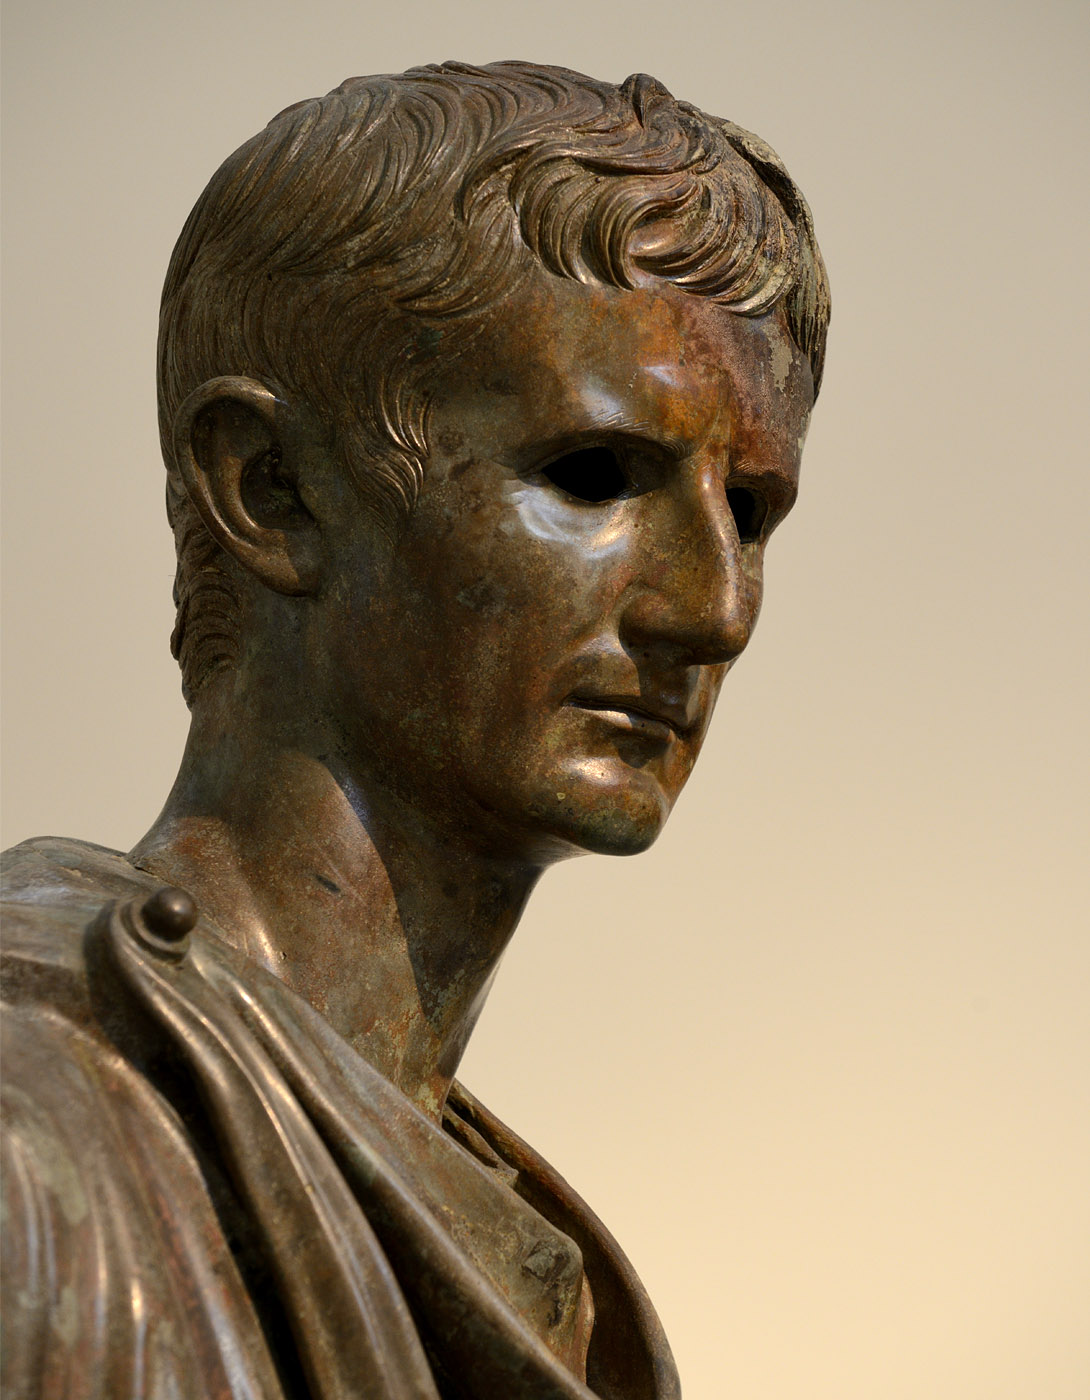 octavian augustus Get information, facts, and pictures about augustus at encyclopediacom make research projects and school reports about augustus easy with credible articles from our free, online encyclopedia and dictionary.